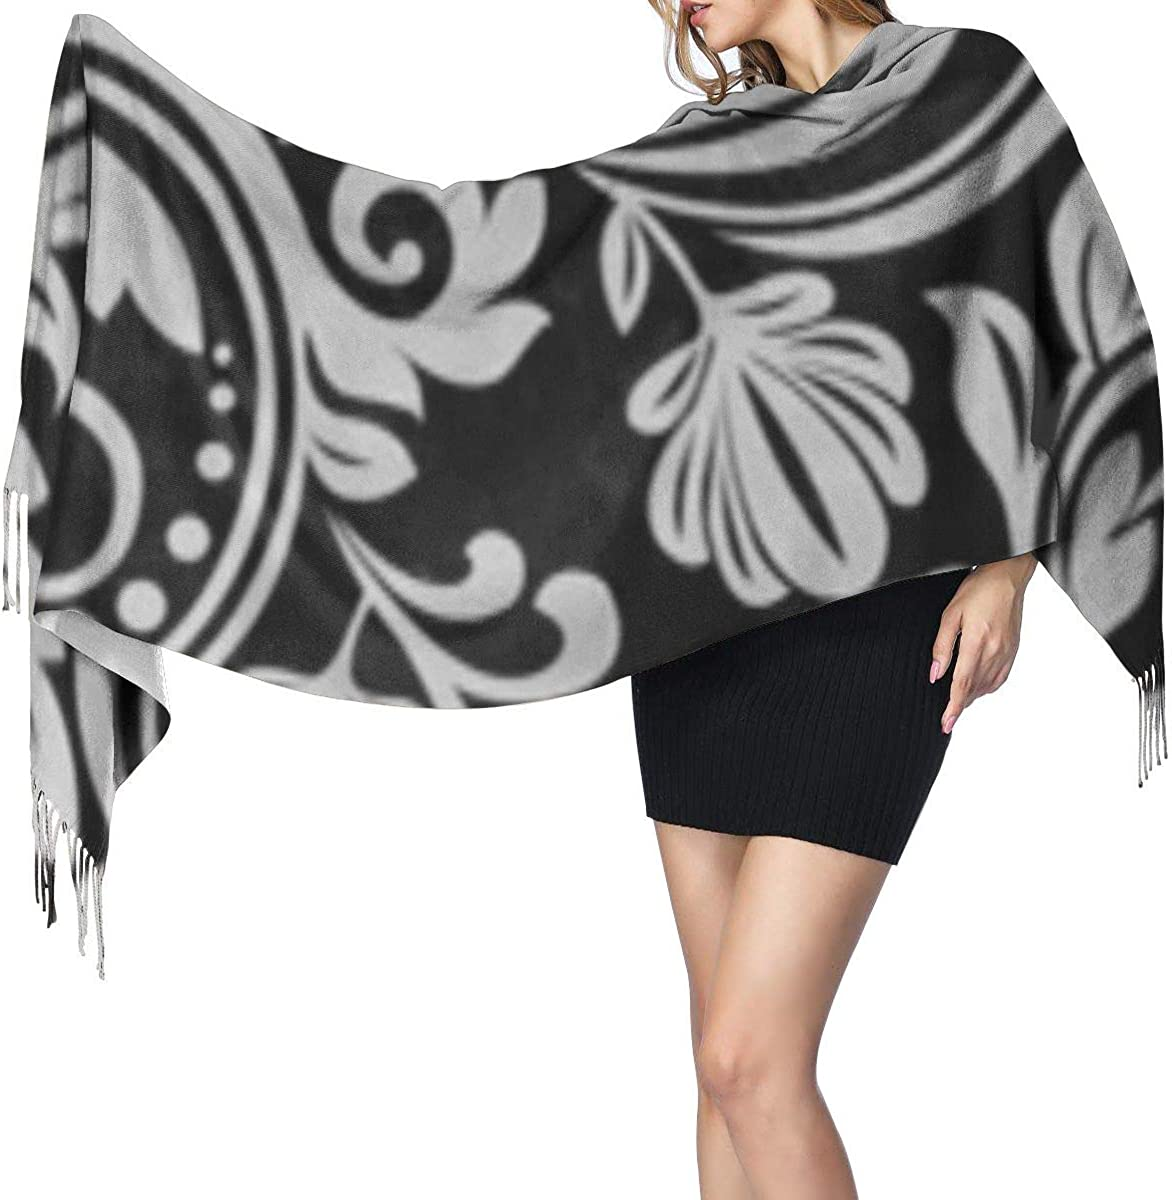 Soft Cashmere Scarf For Women Gray Floral Pattern Baroque Damask Grey And Black Graphic Modern Fashion Lady Shawls,Comfortable Warm Winter Scarfs